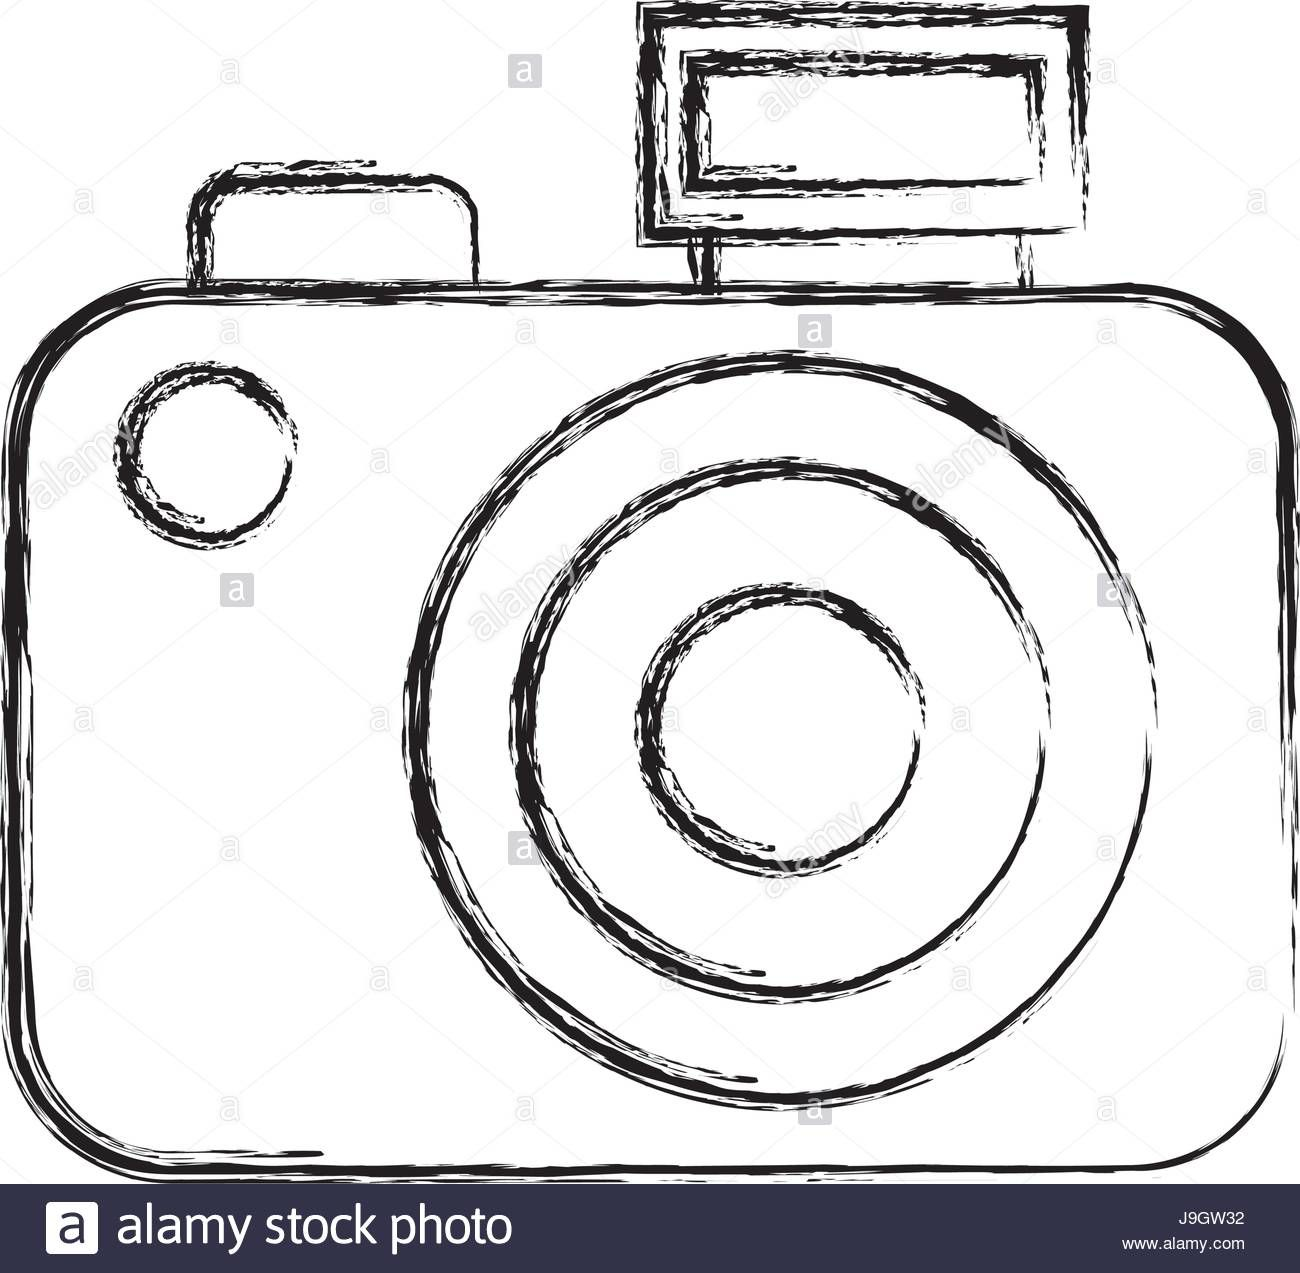 Download this stock vector: sketch draw camera cartoon